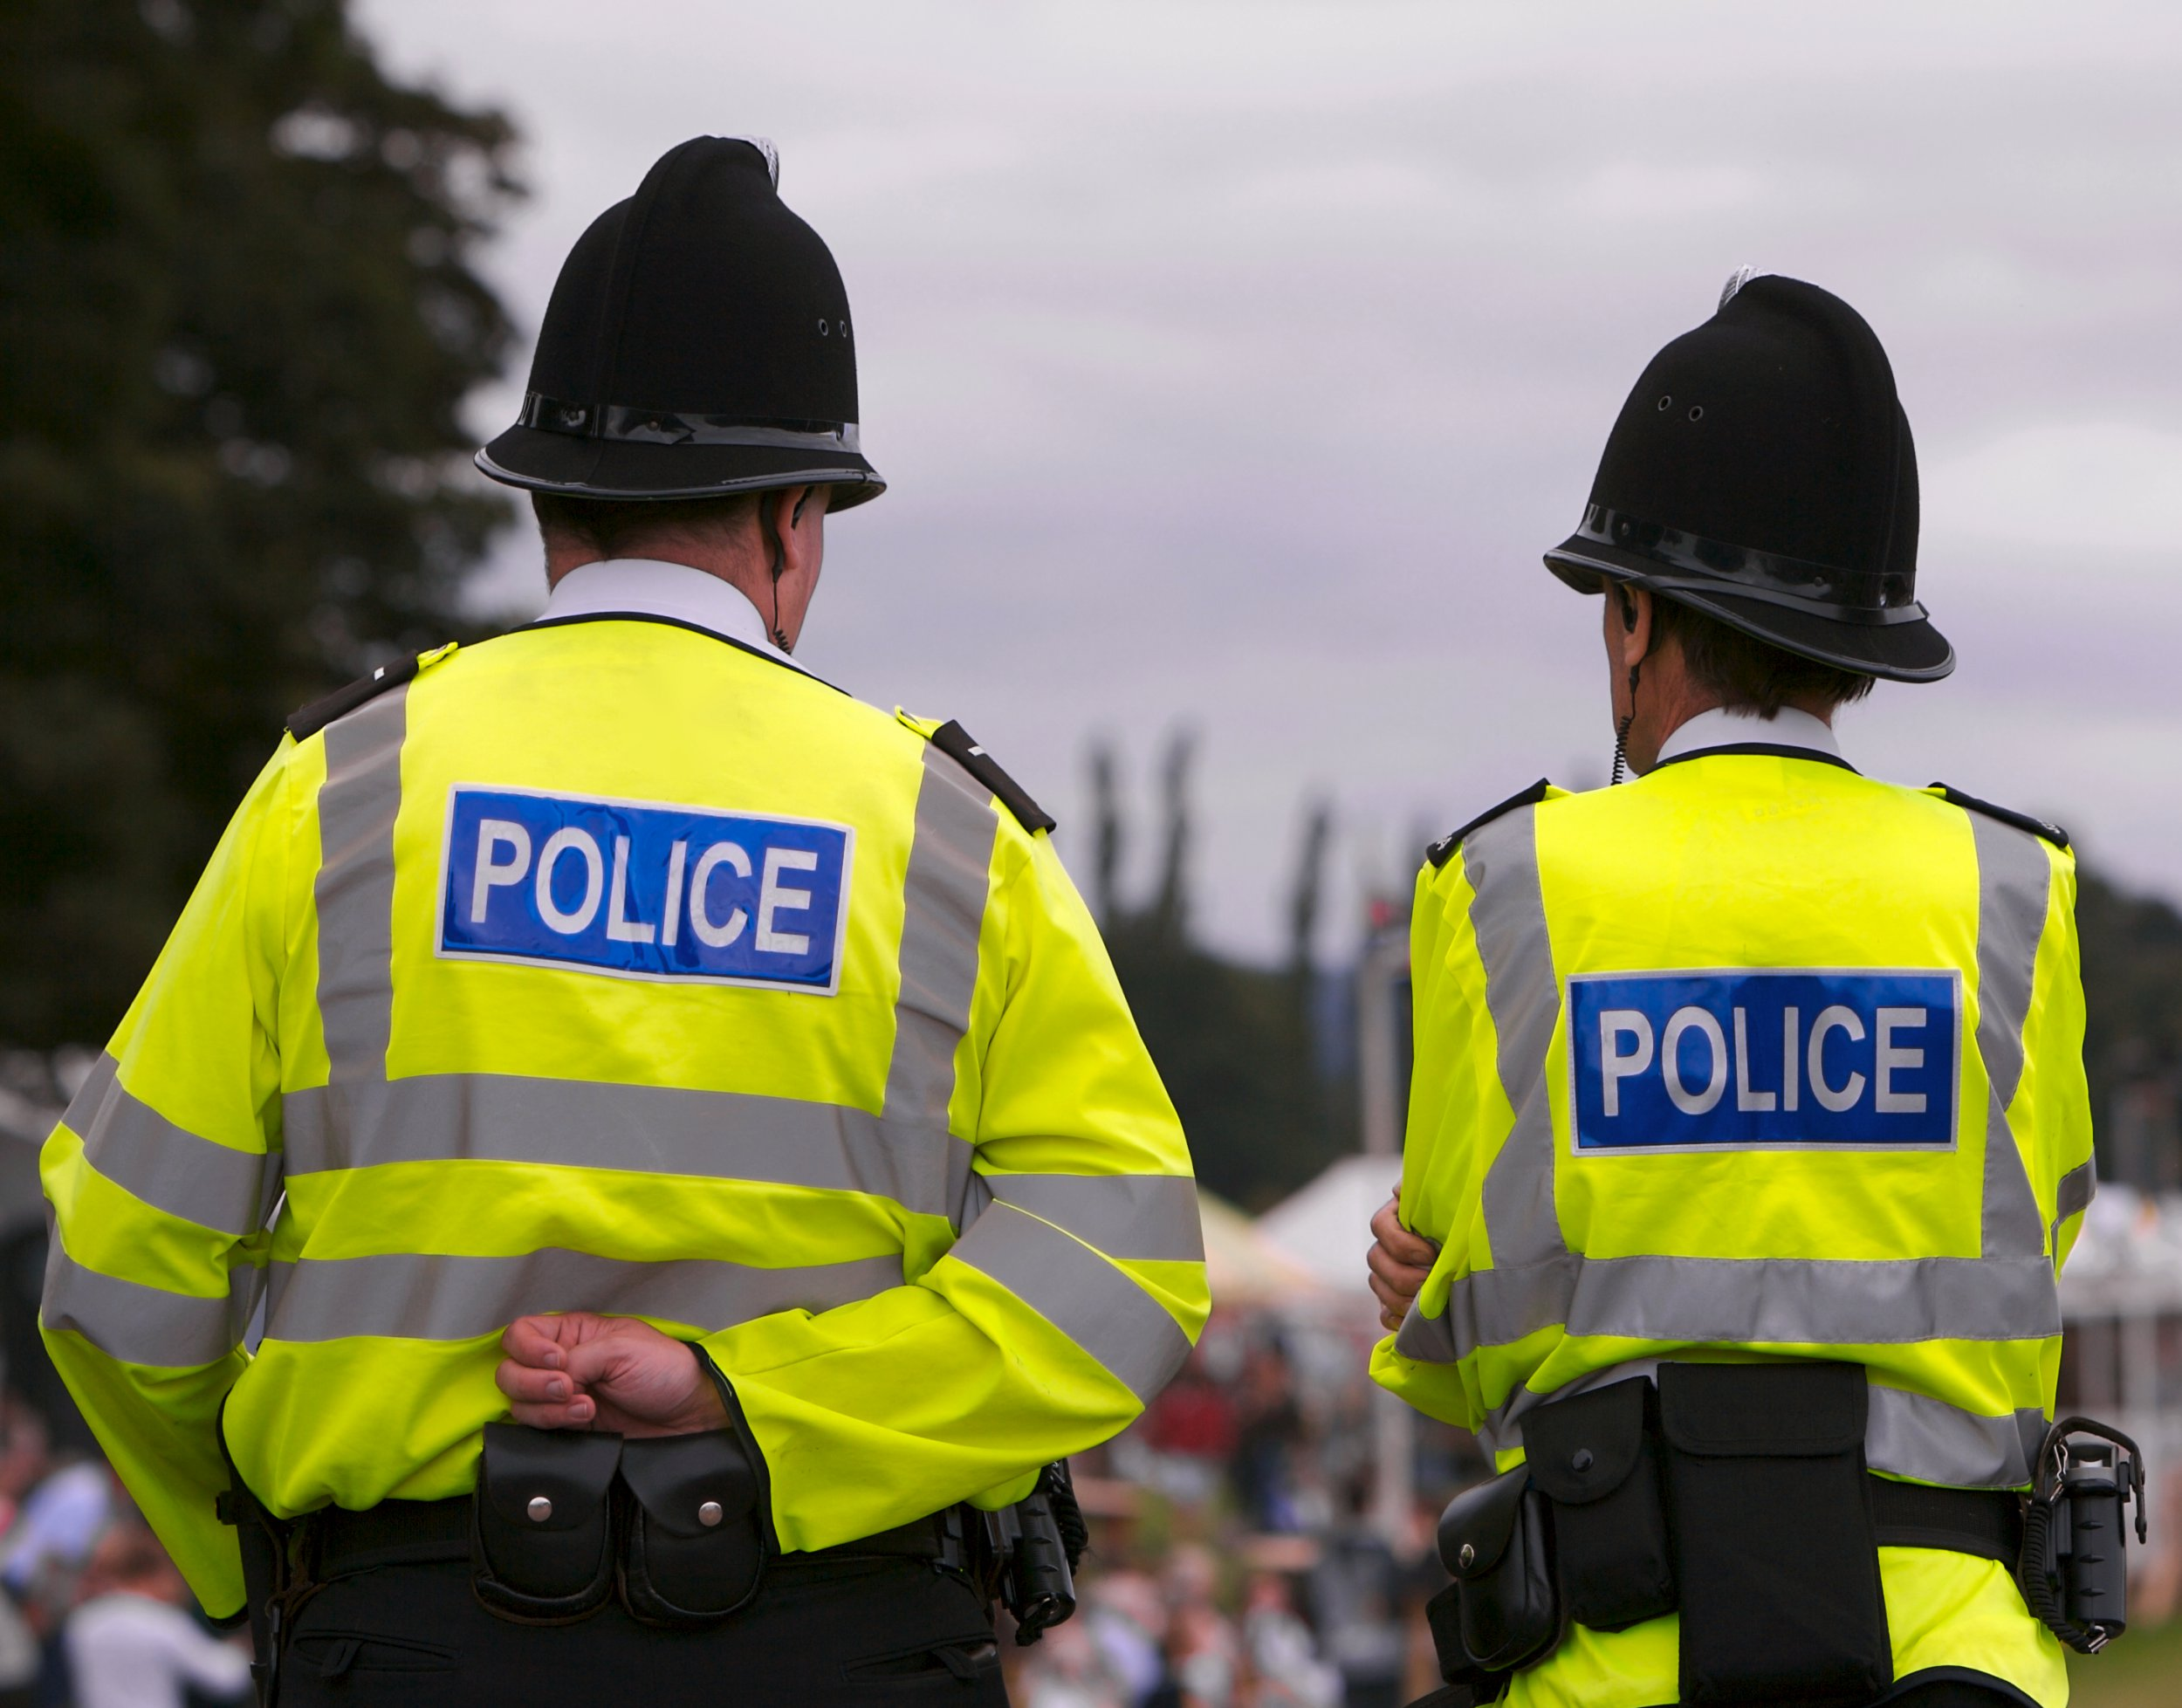 Two British Police Officers guard the entrance to the arena of a Summer Fair, on a typically gloomy British Summers day.